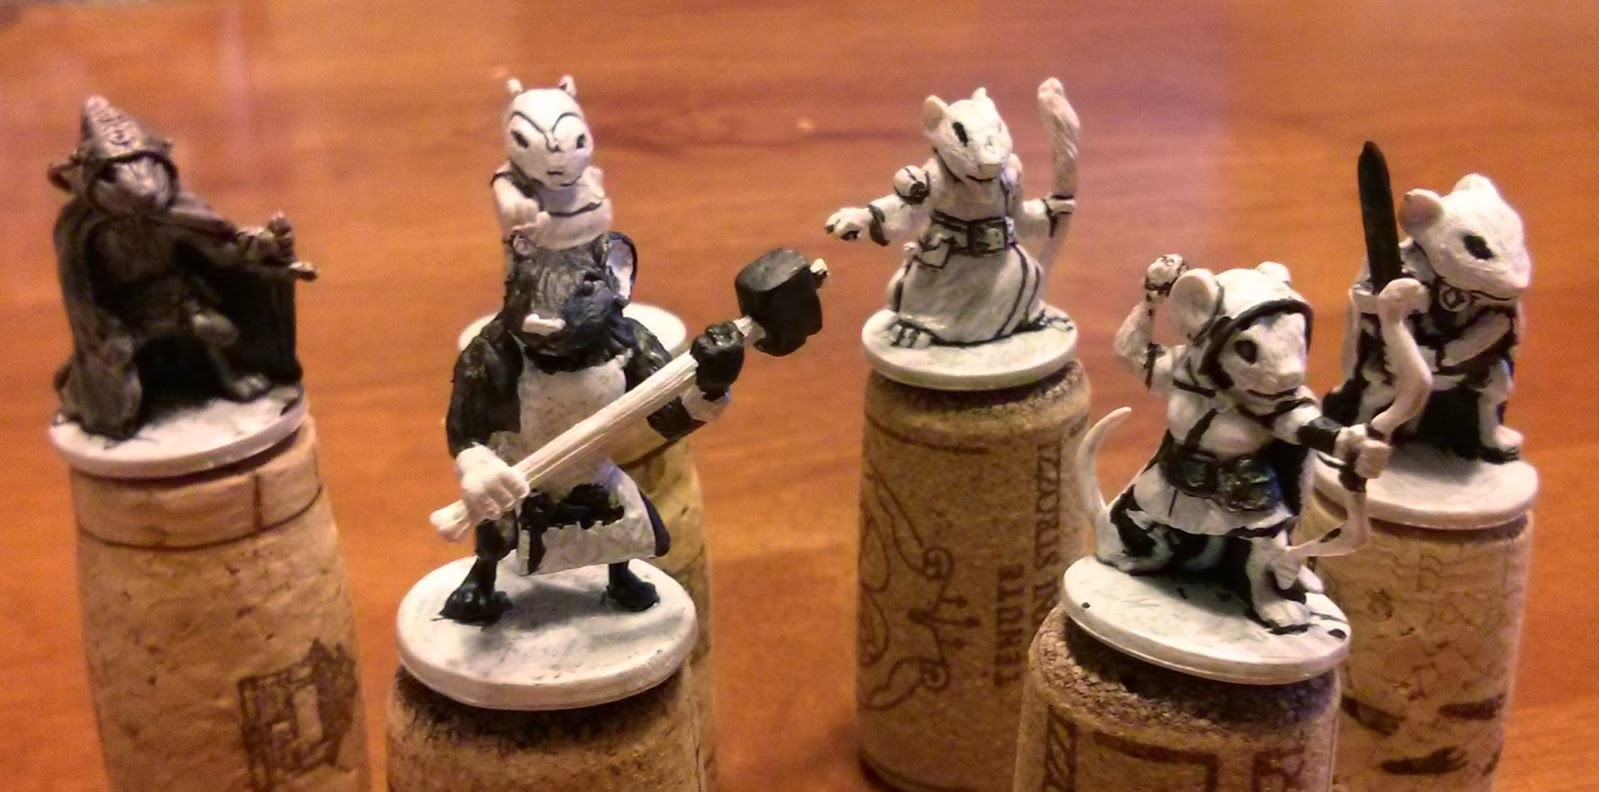 Painting miniatures color master primer - Filch Was The First One I Painted The Figure On The Far Left Above He Is Mostly Cloak And So This Was My Chance To Try Lowlighting